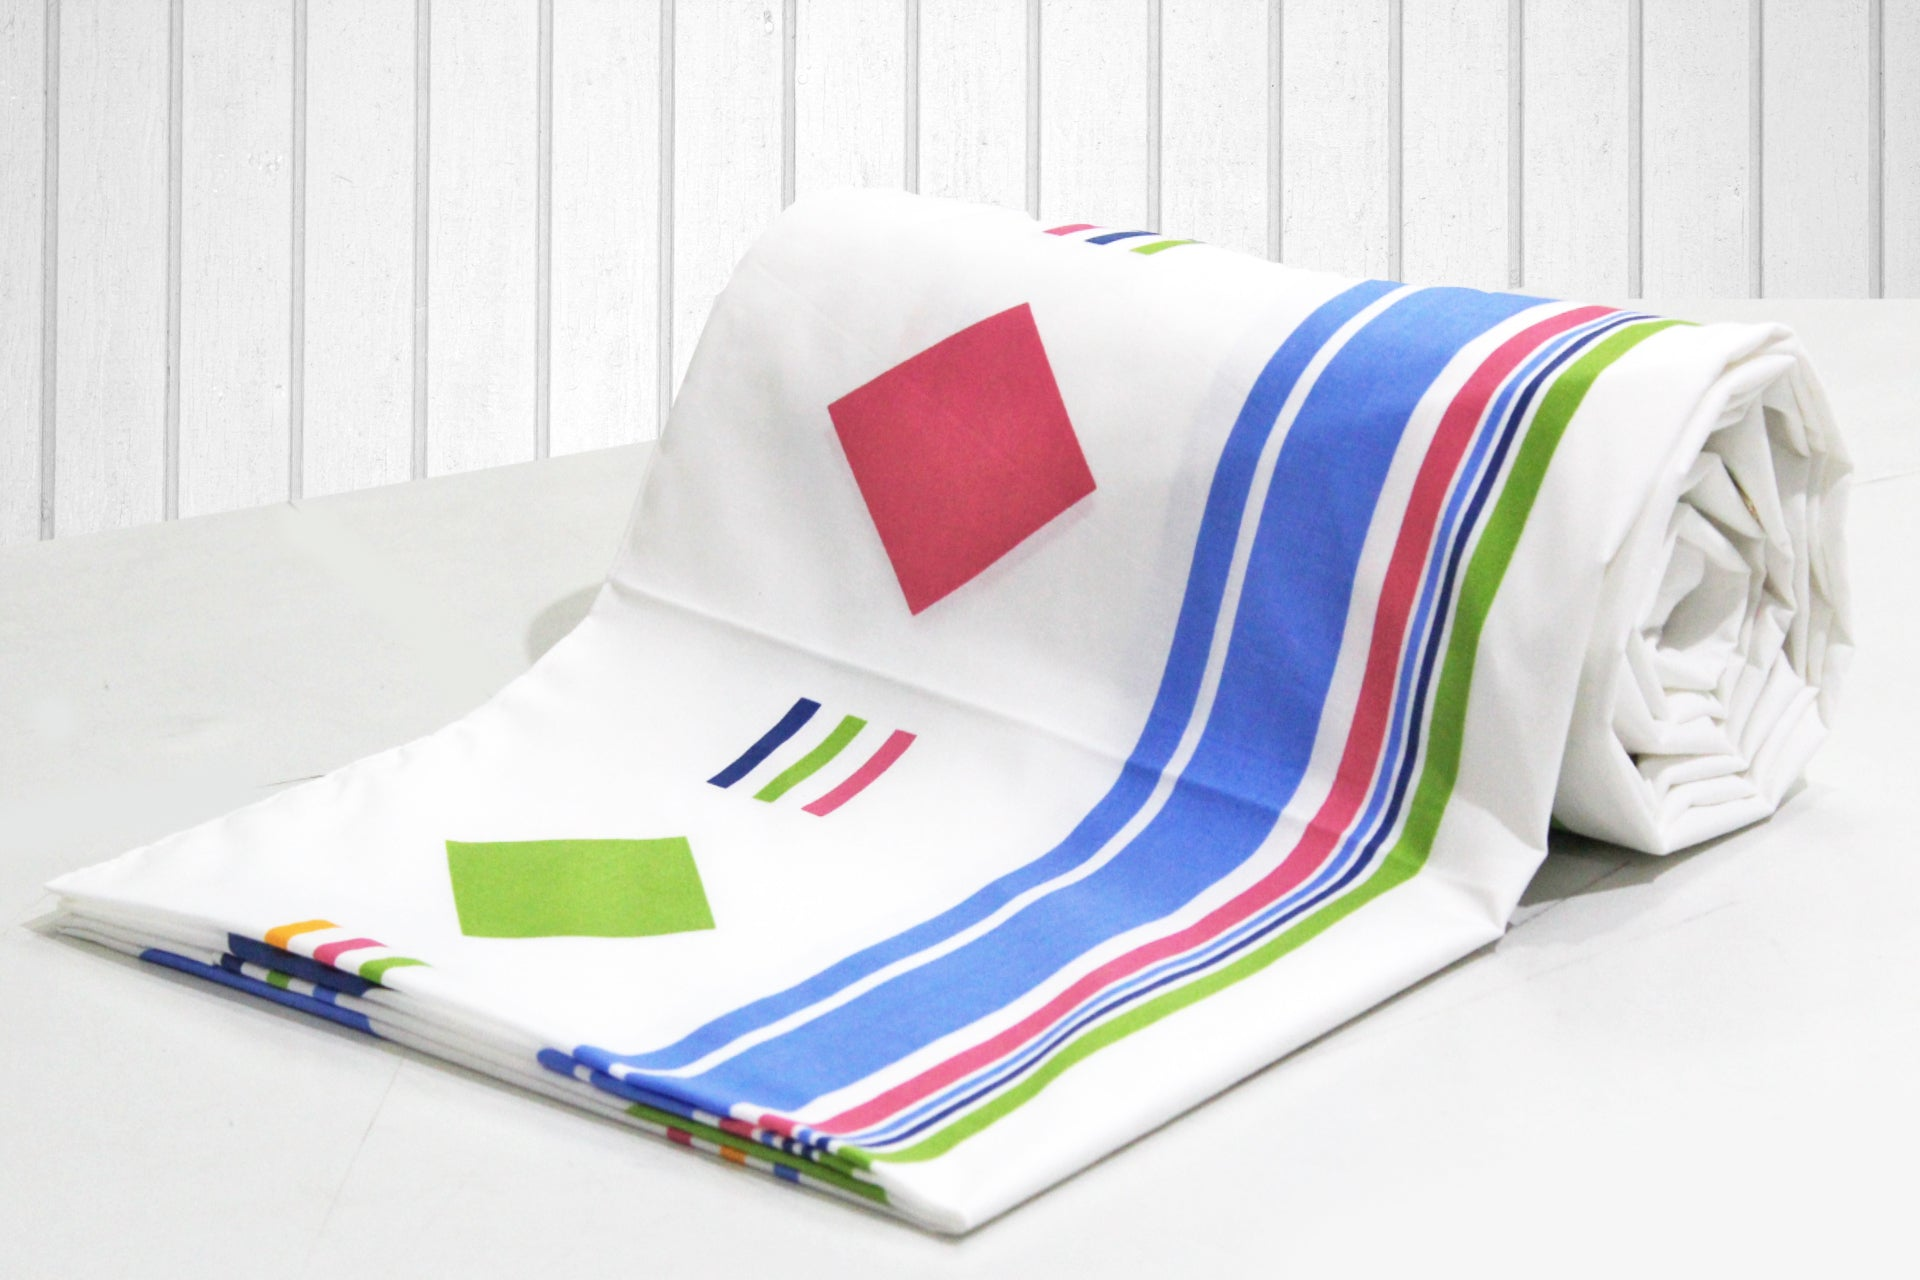 AURAVE Blue Stripes Geometrical Squares 1 Piece Cotton Duvet Cover/Quilt Cover/Blanket Cover, Single Bed (with Zipper)